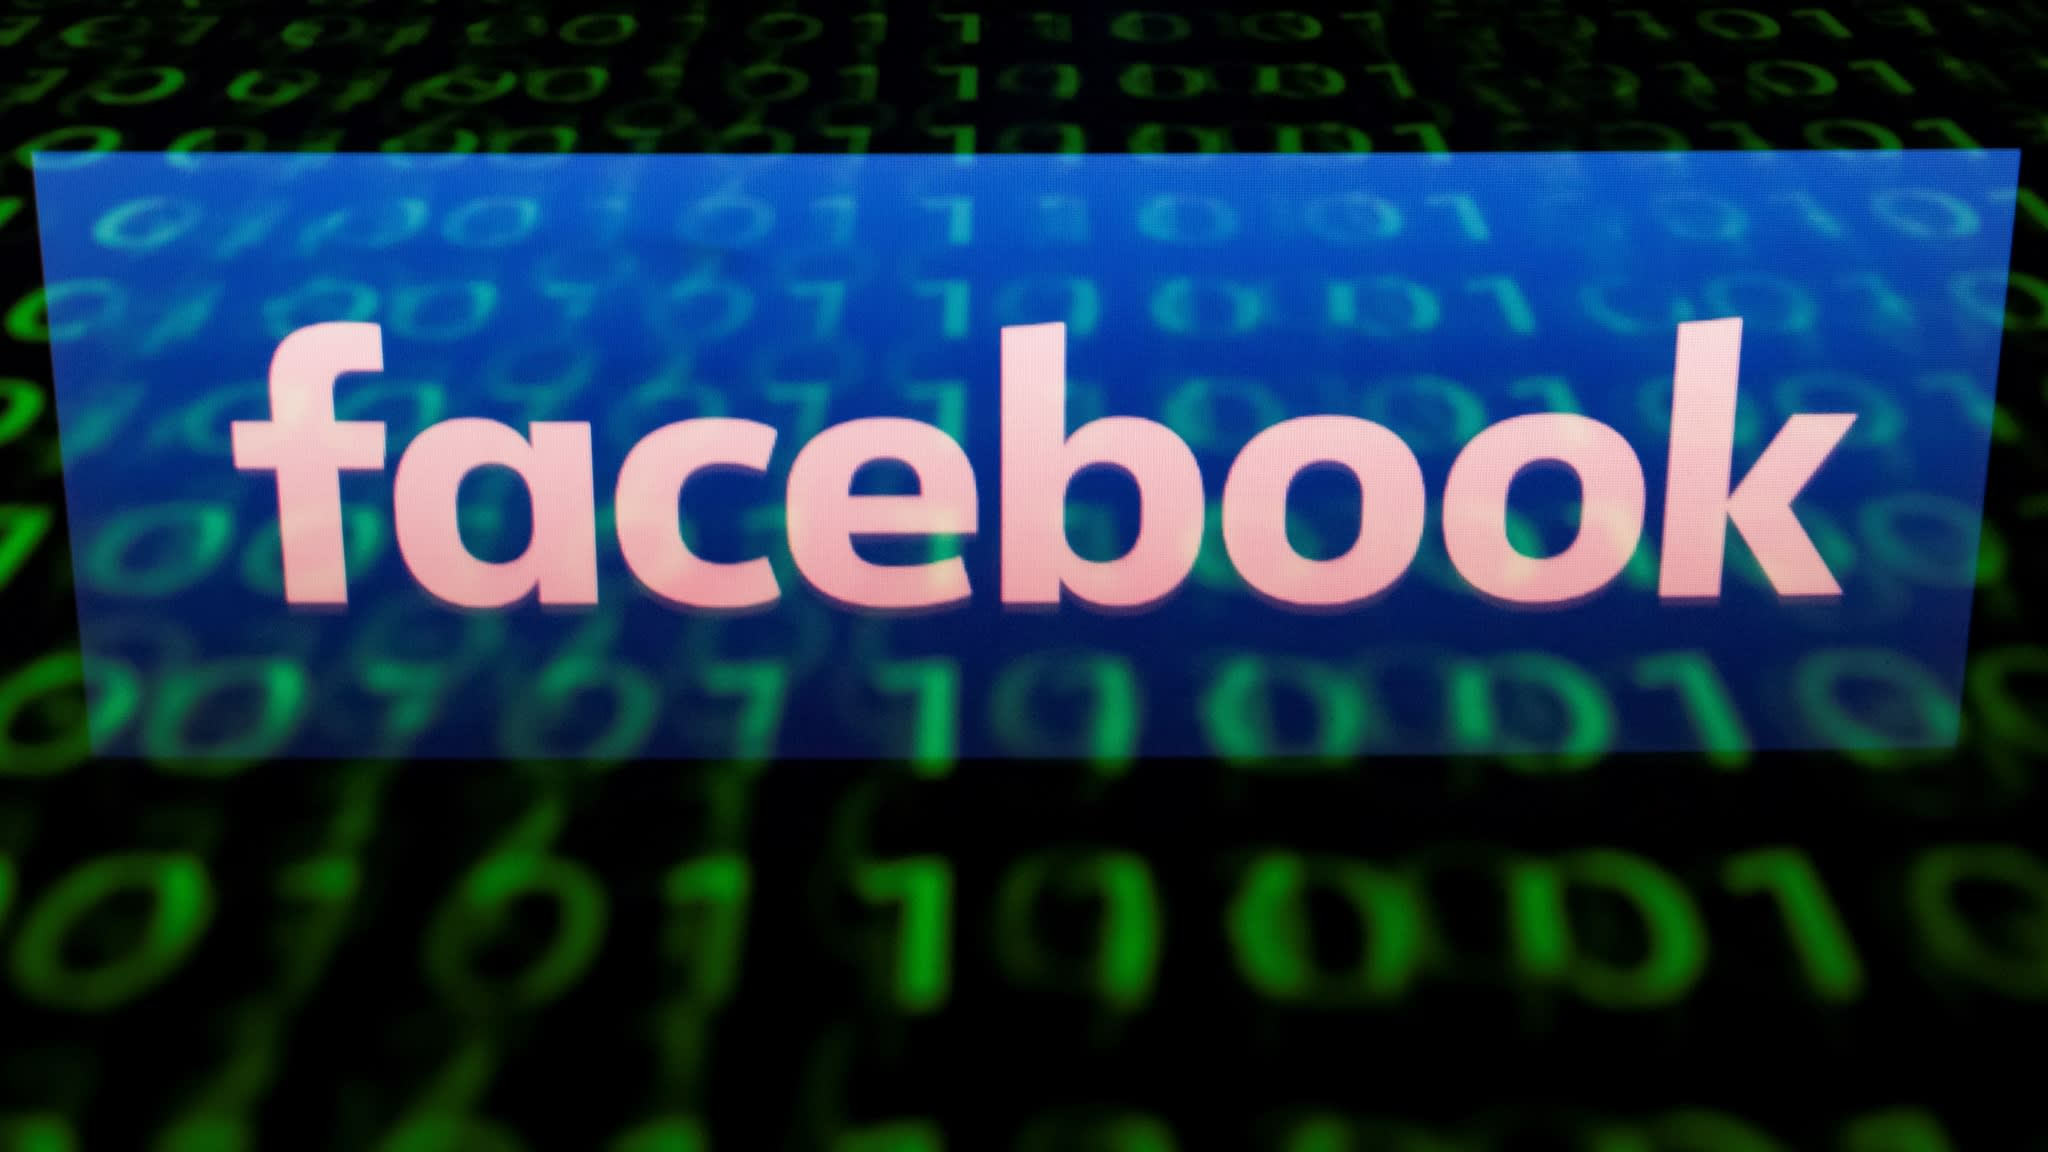 Facebook says cyber attack affected 30m accounts